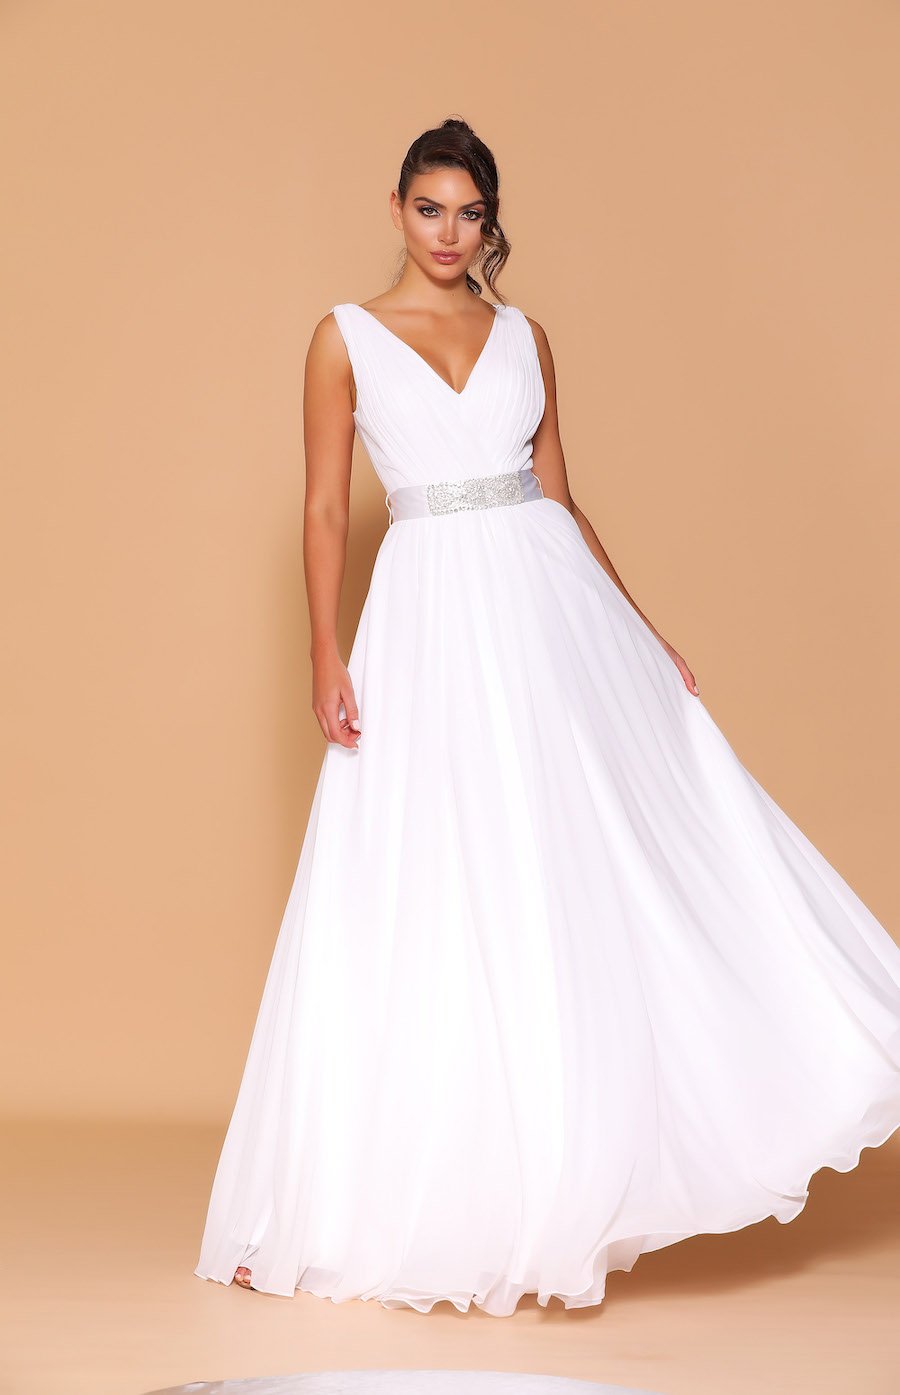 White chiffon dress with pleated bodice, full skirt and diamante belt